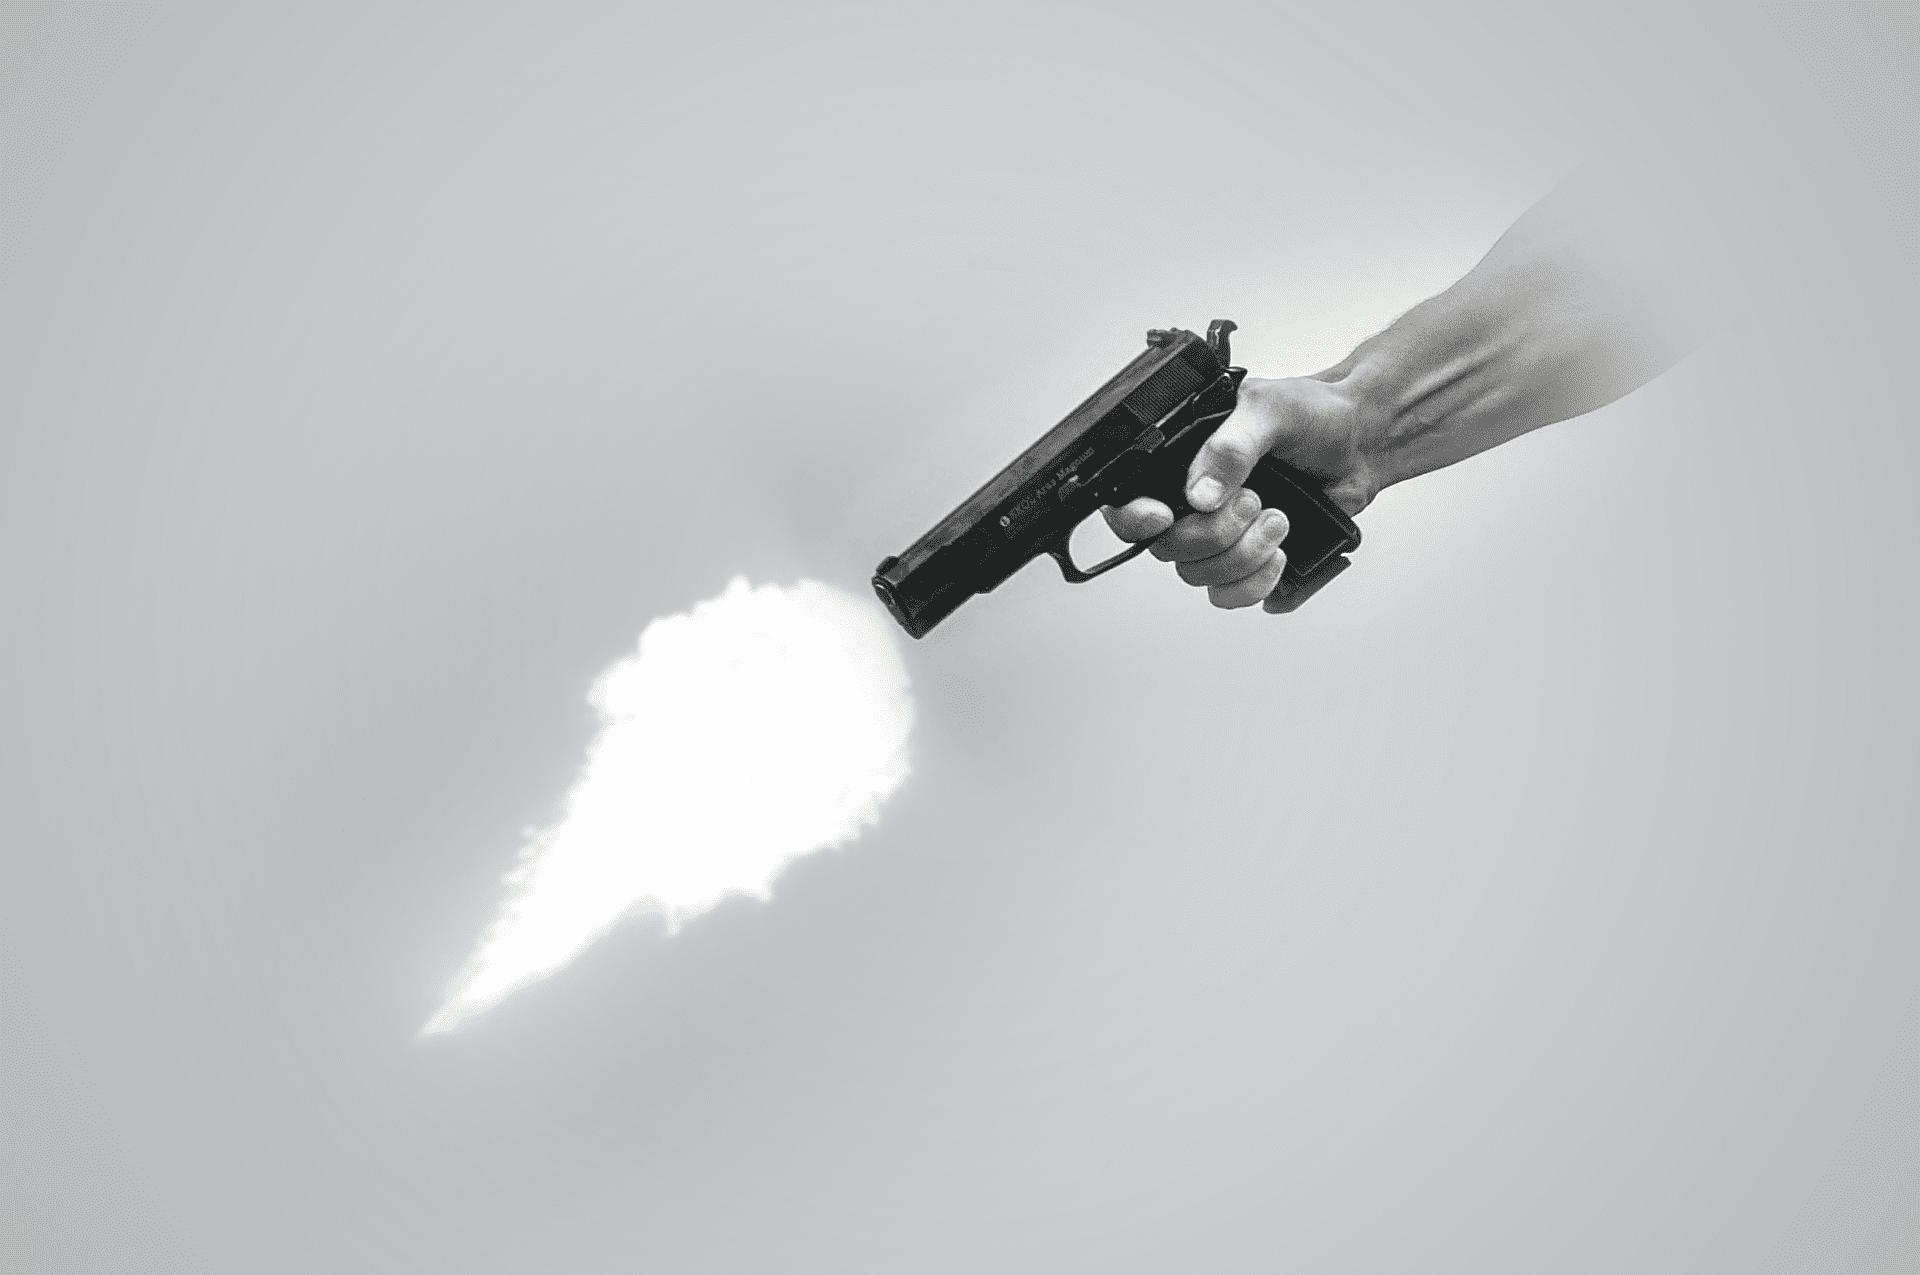 A gunshot muzzle | Source: Pixabay